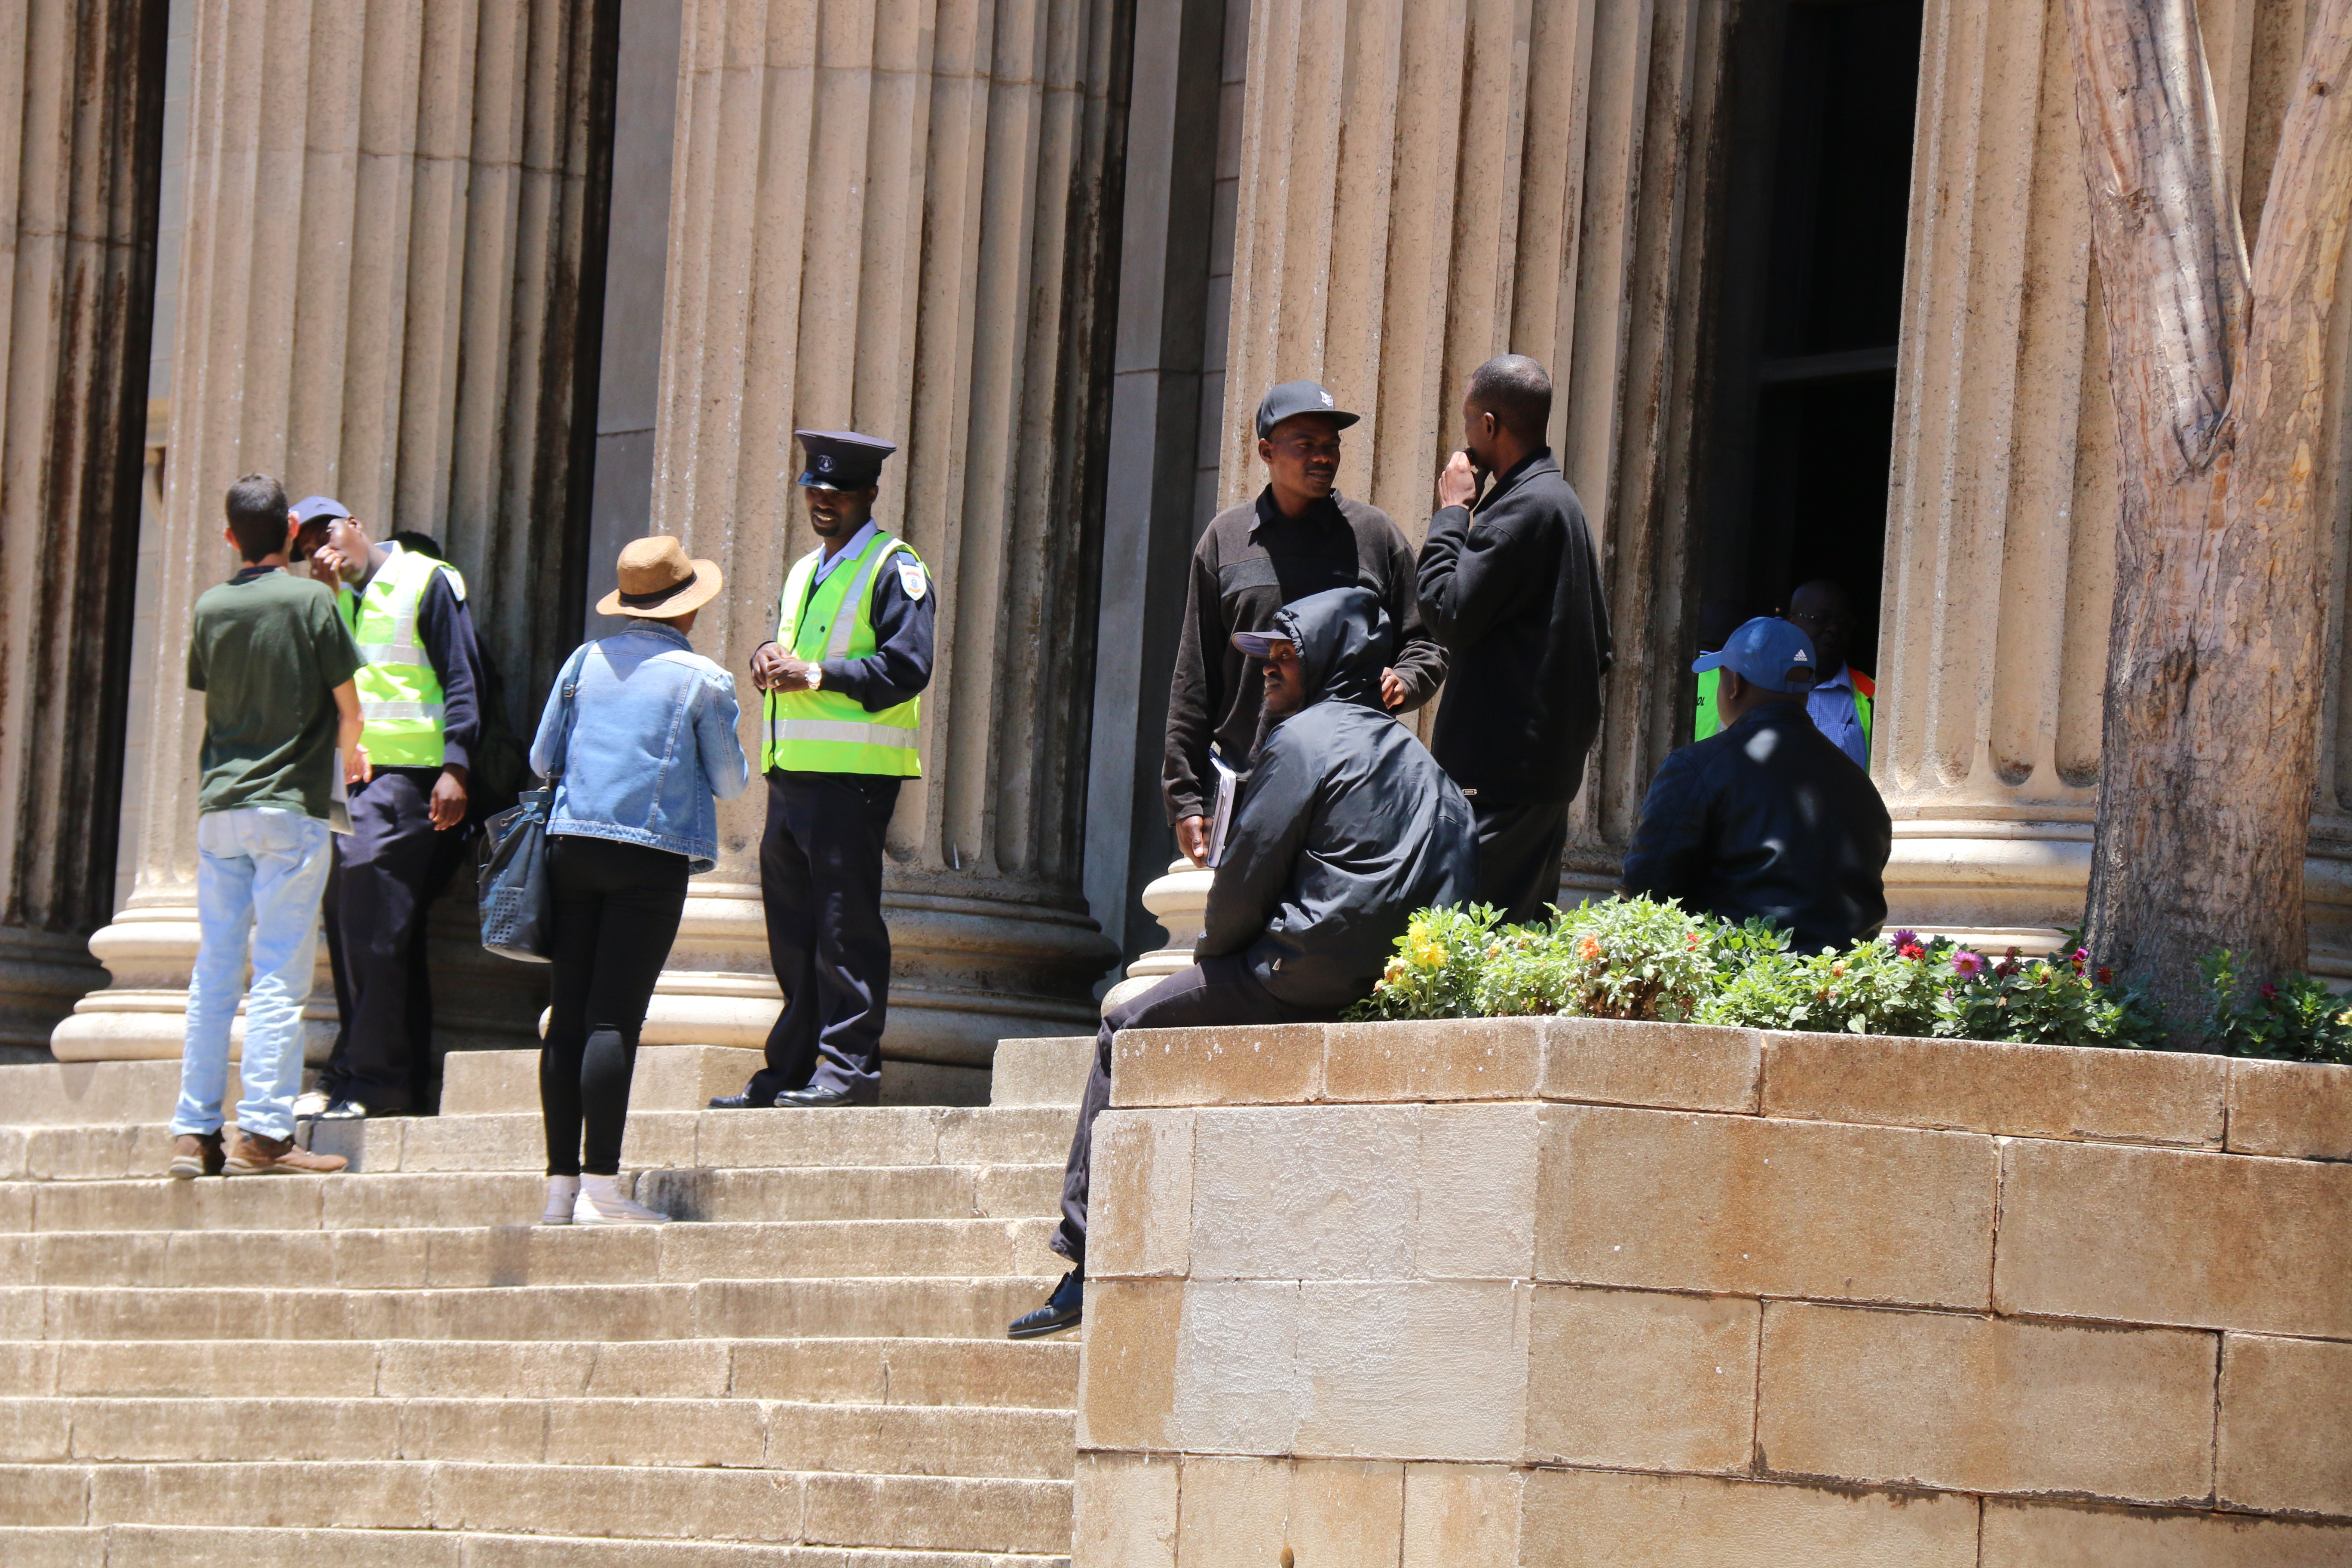 Wits opens criminal case into Great Hall standoff